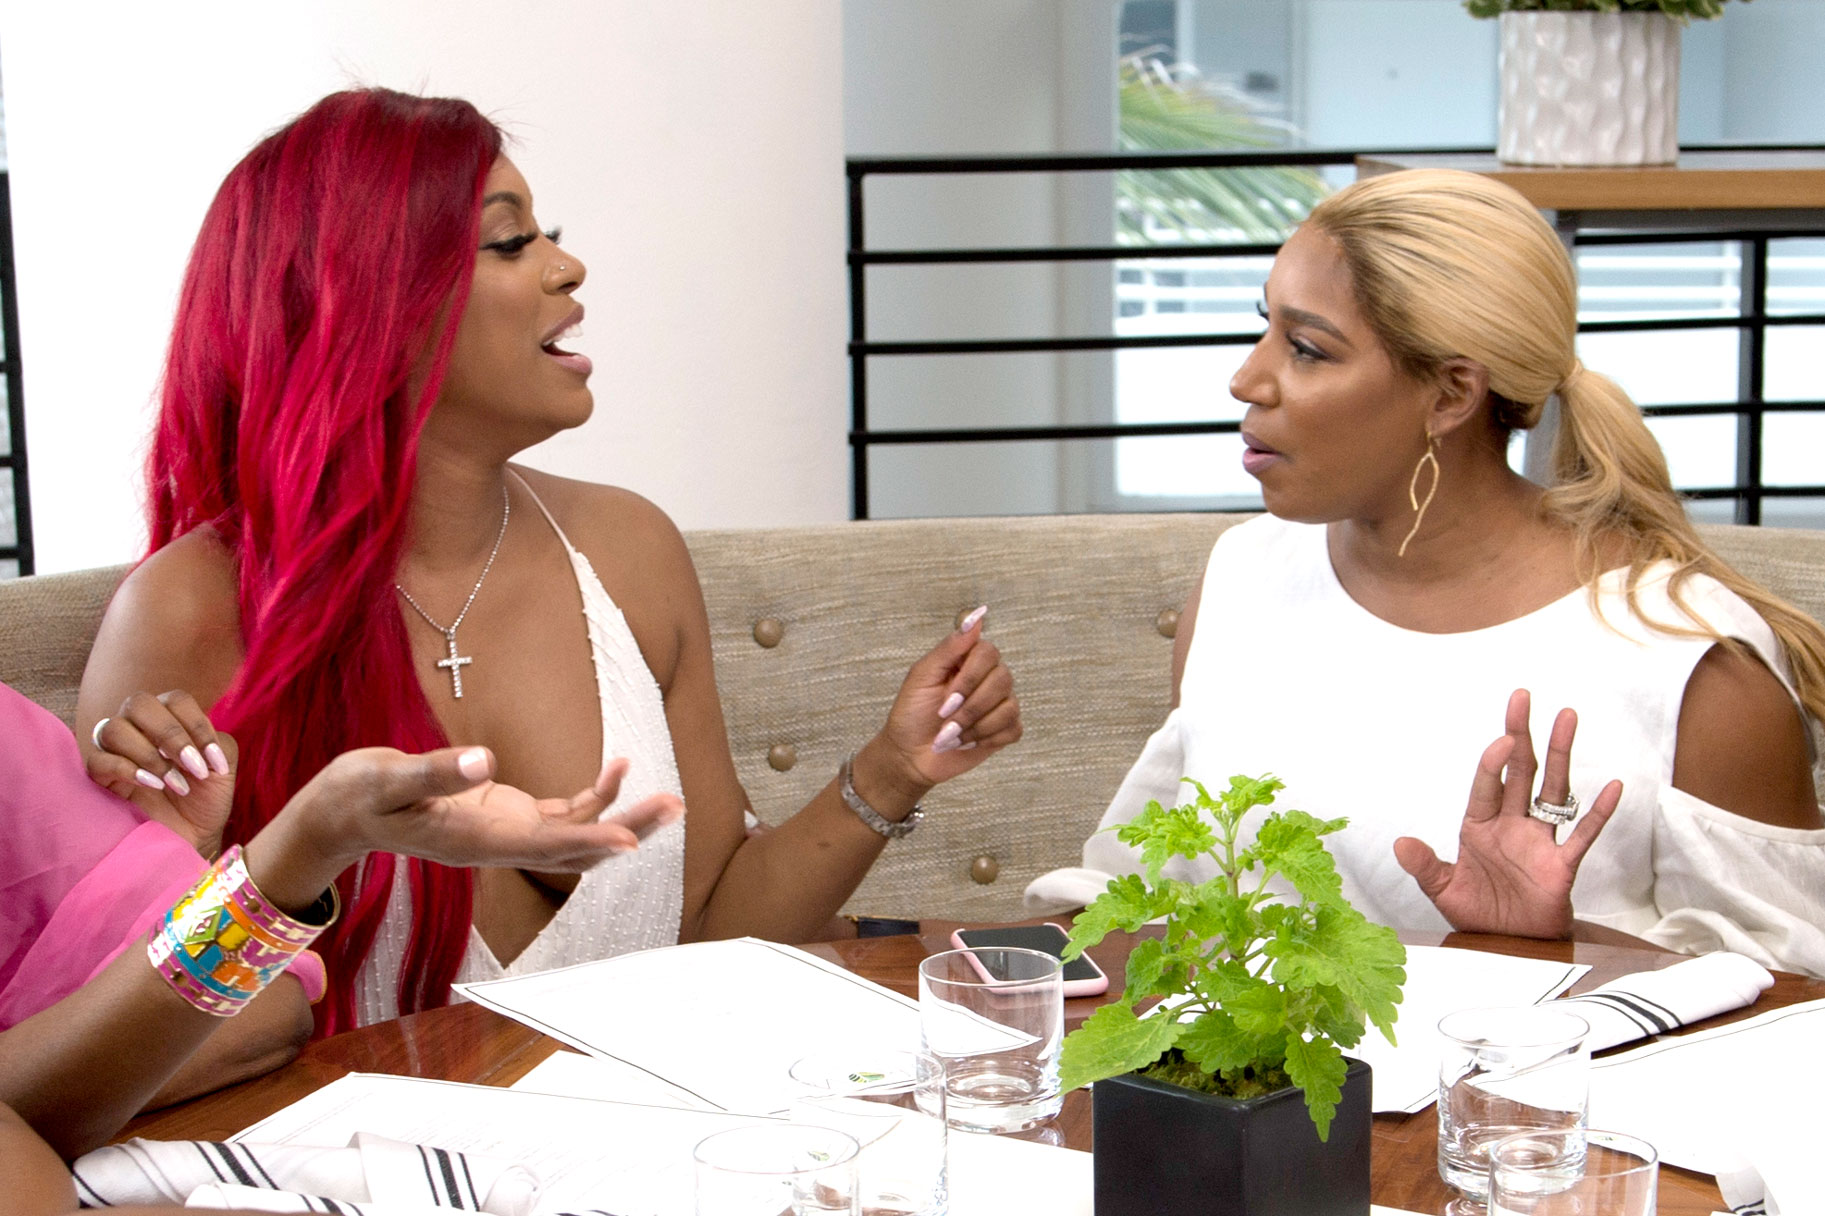 Porsha Williams and Nene Leakes on The Real Housewives of Atlanta